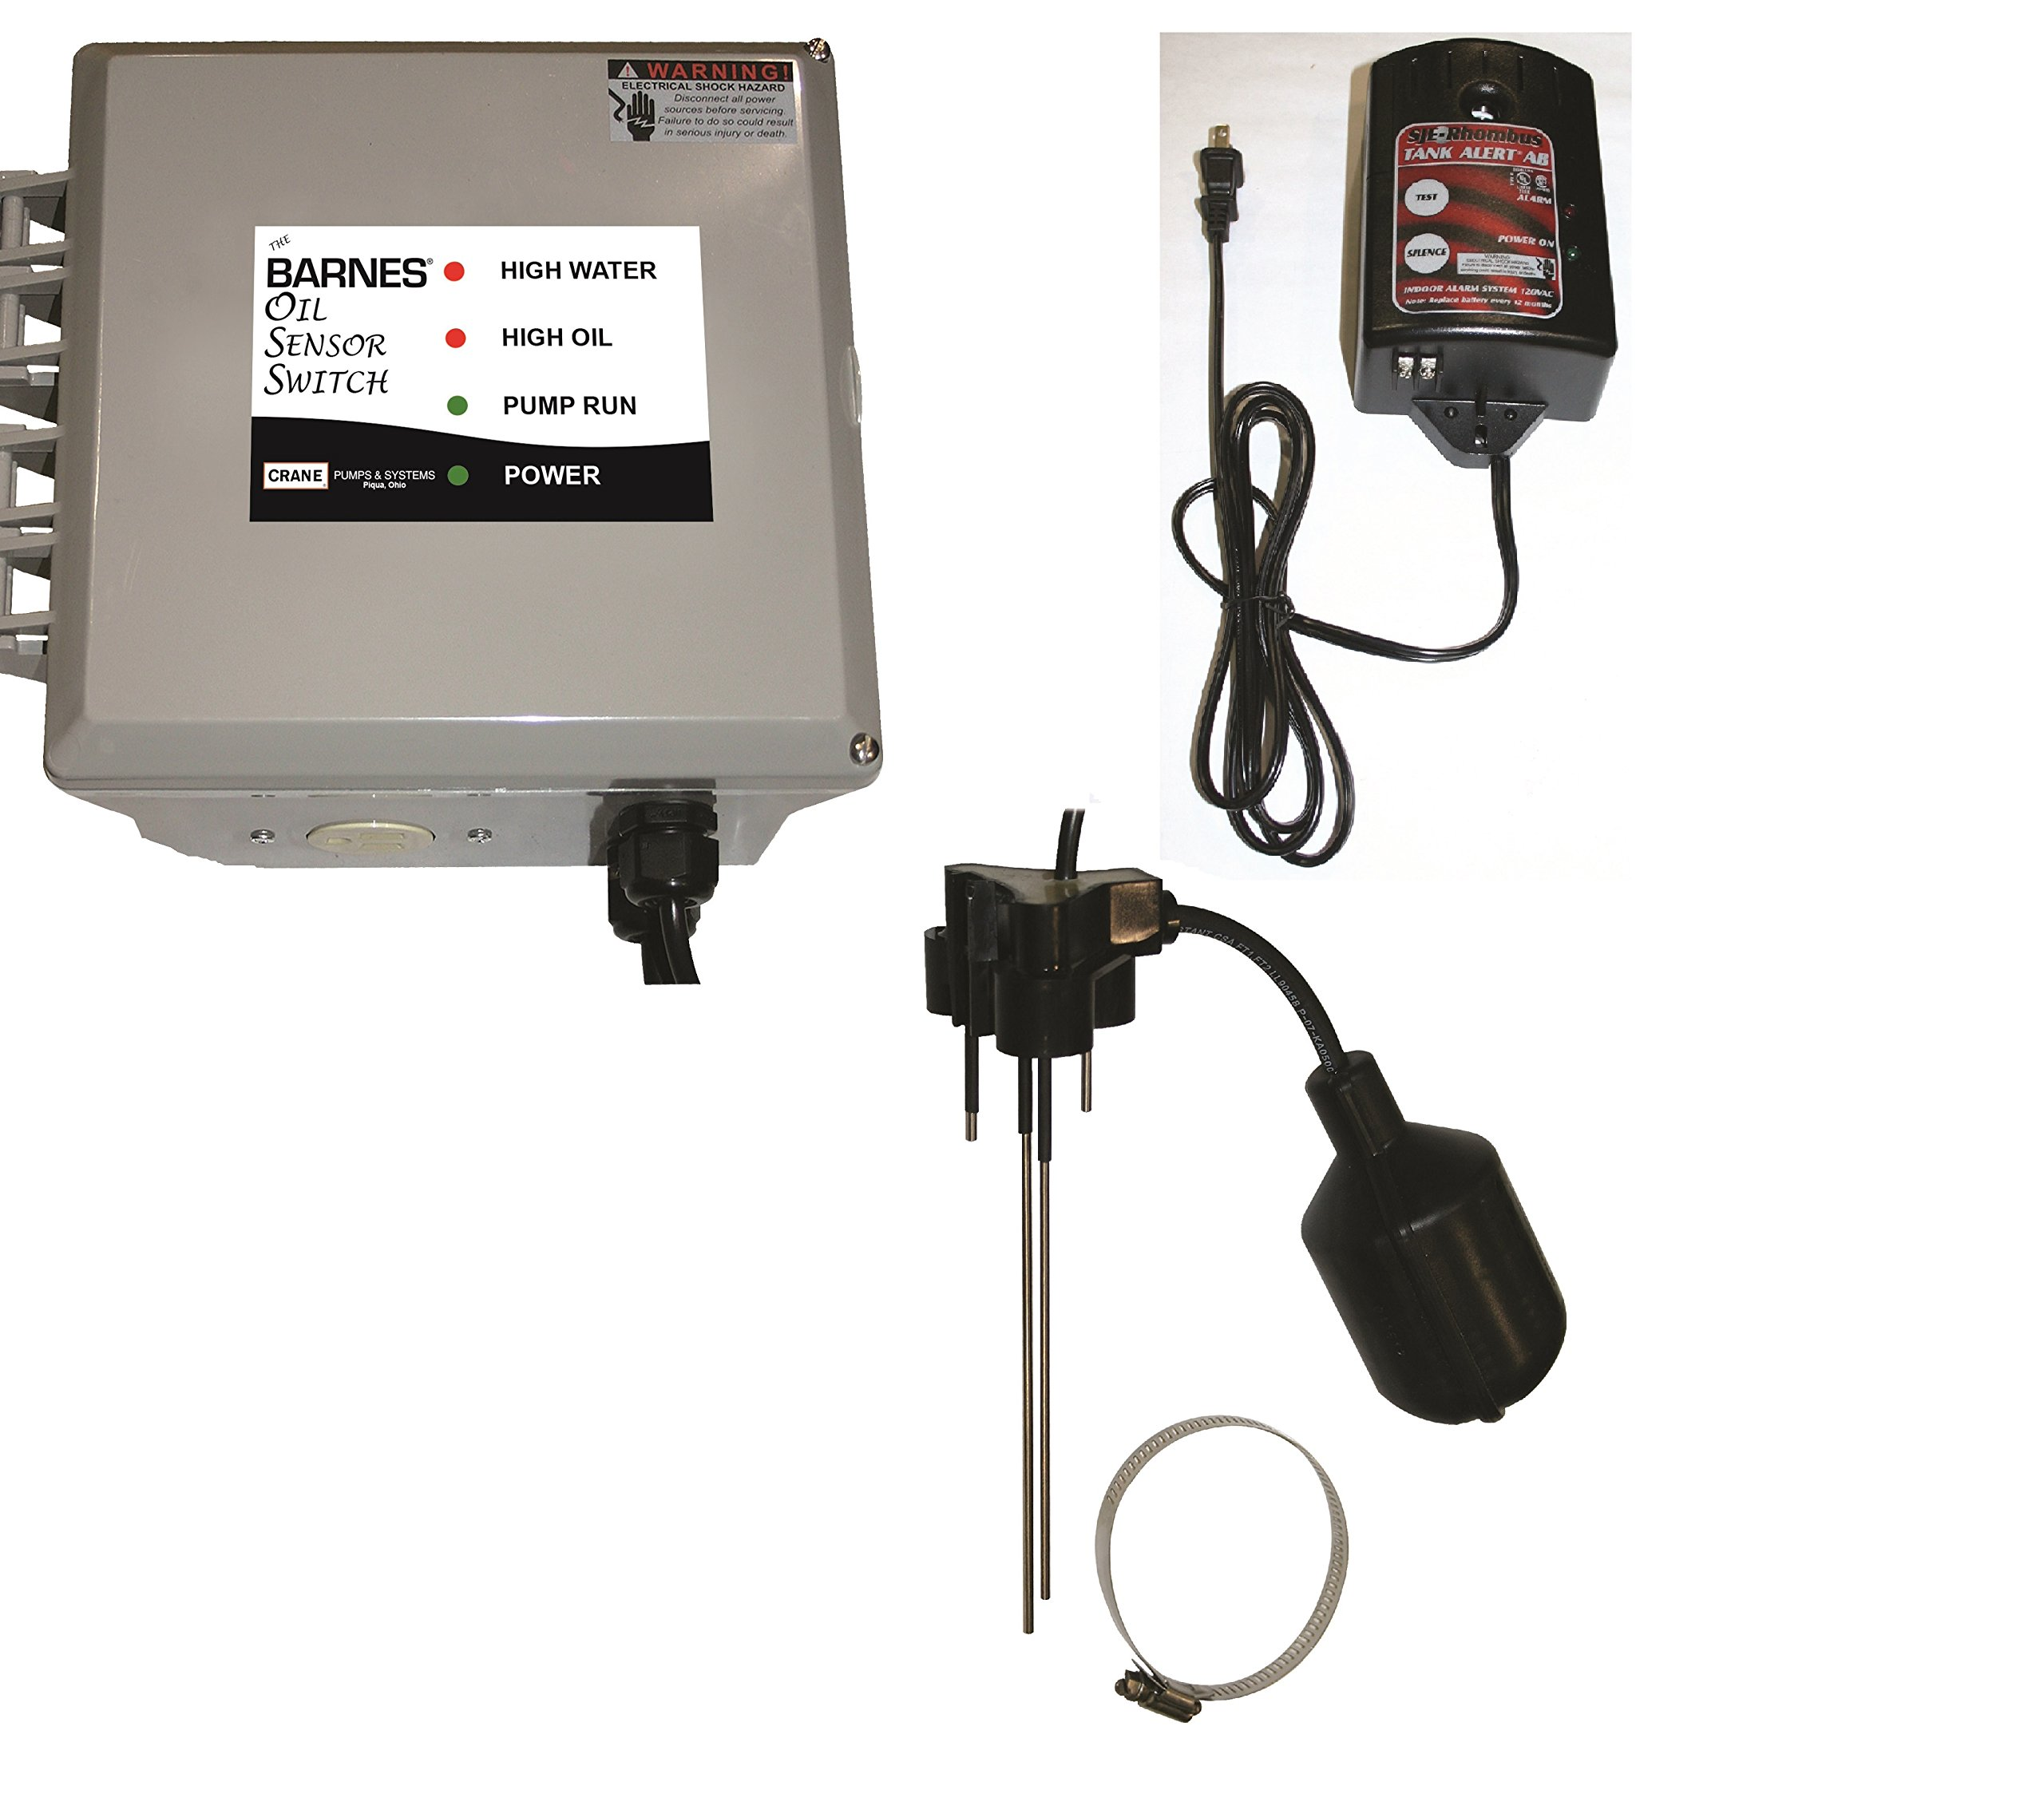 Barnes 135795 BOSS Series Oil Sensor Switch with High Water Alarm, 120V, 1 Phase, 15 Amp, NEMA 1 Enclosure, 10' Power Cord